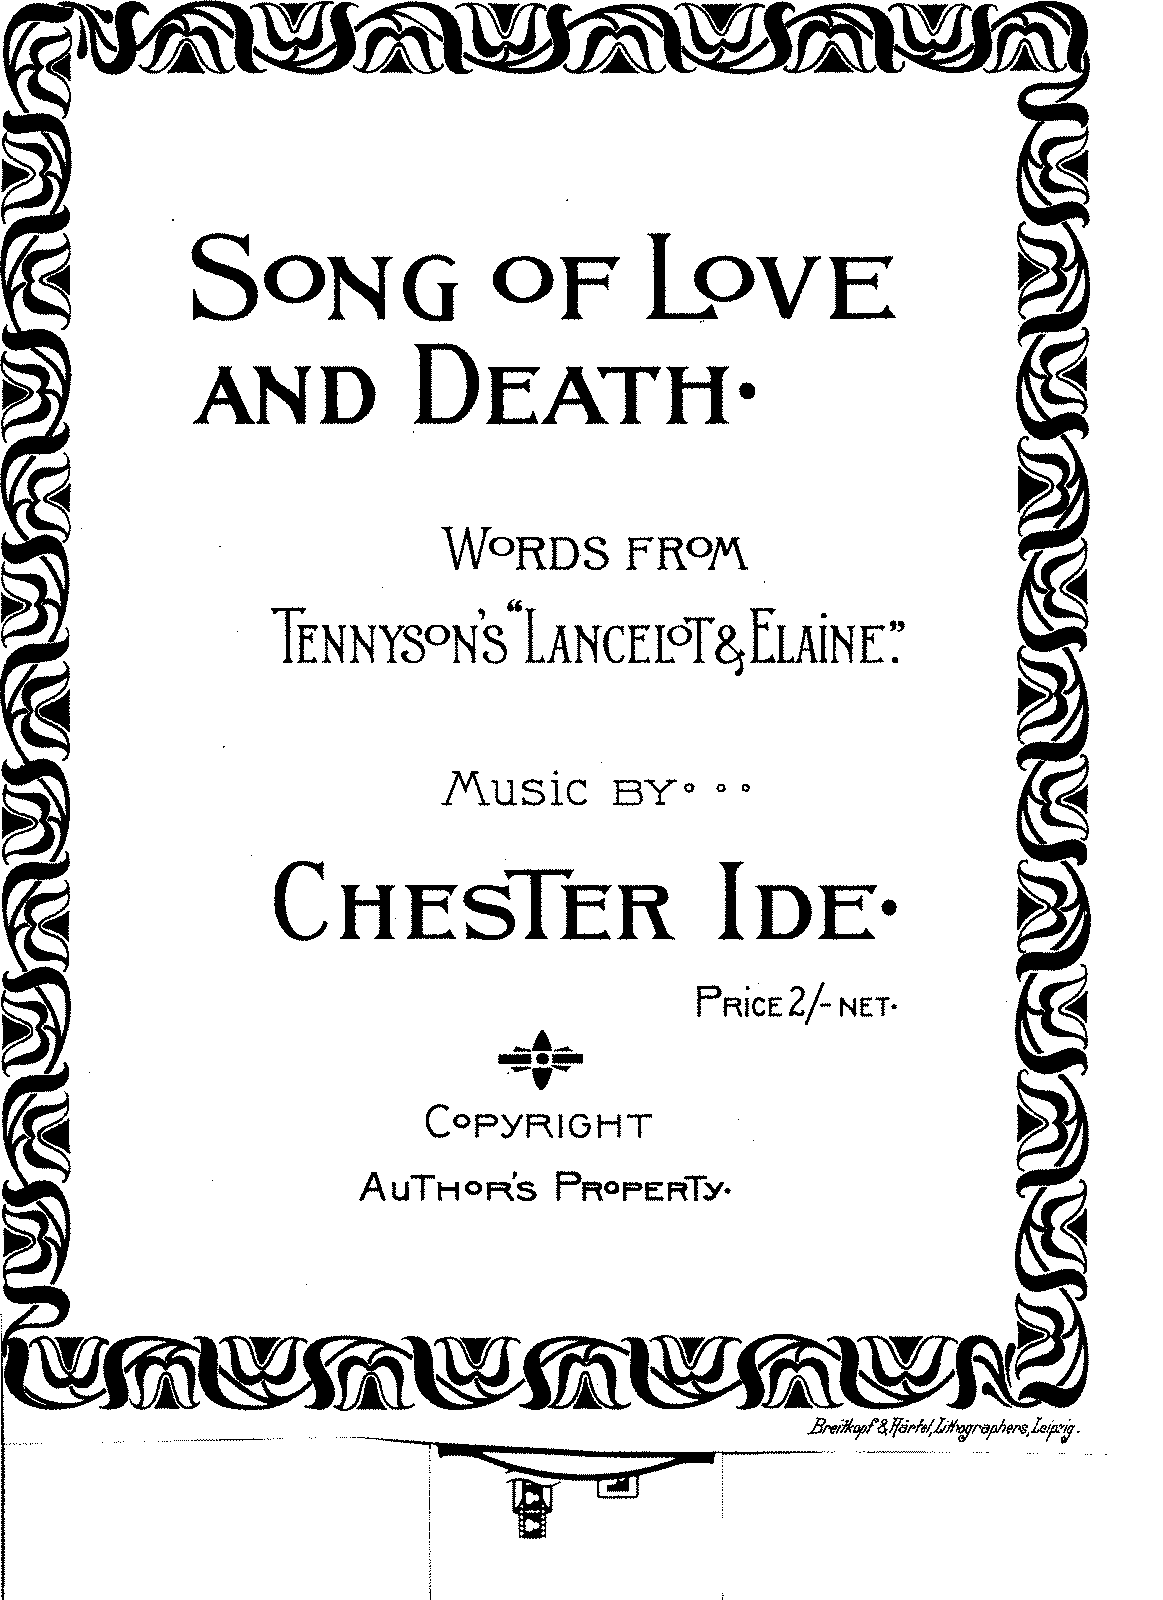 PMLP485655-ide song of love and death-1-.pdf